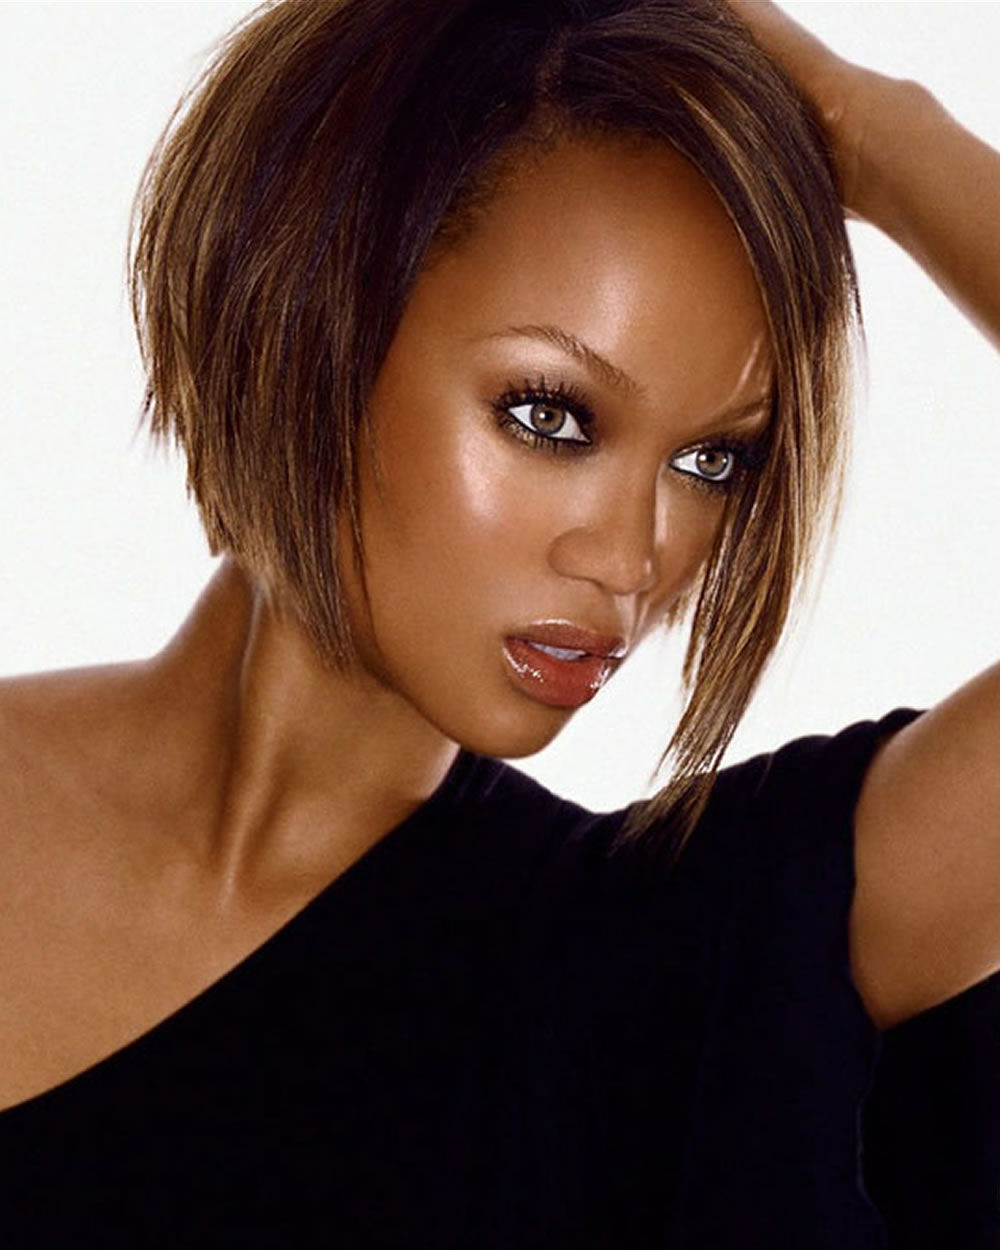 Current Tyra Banks Medium Hairstyles In Short Bob Hairstyle Inspirations (View 6 of 20)